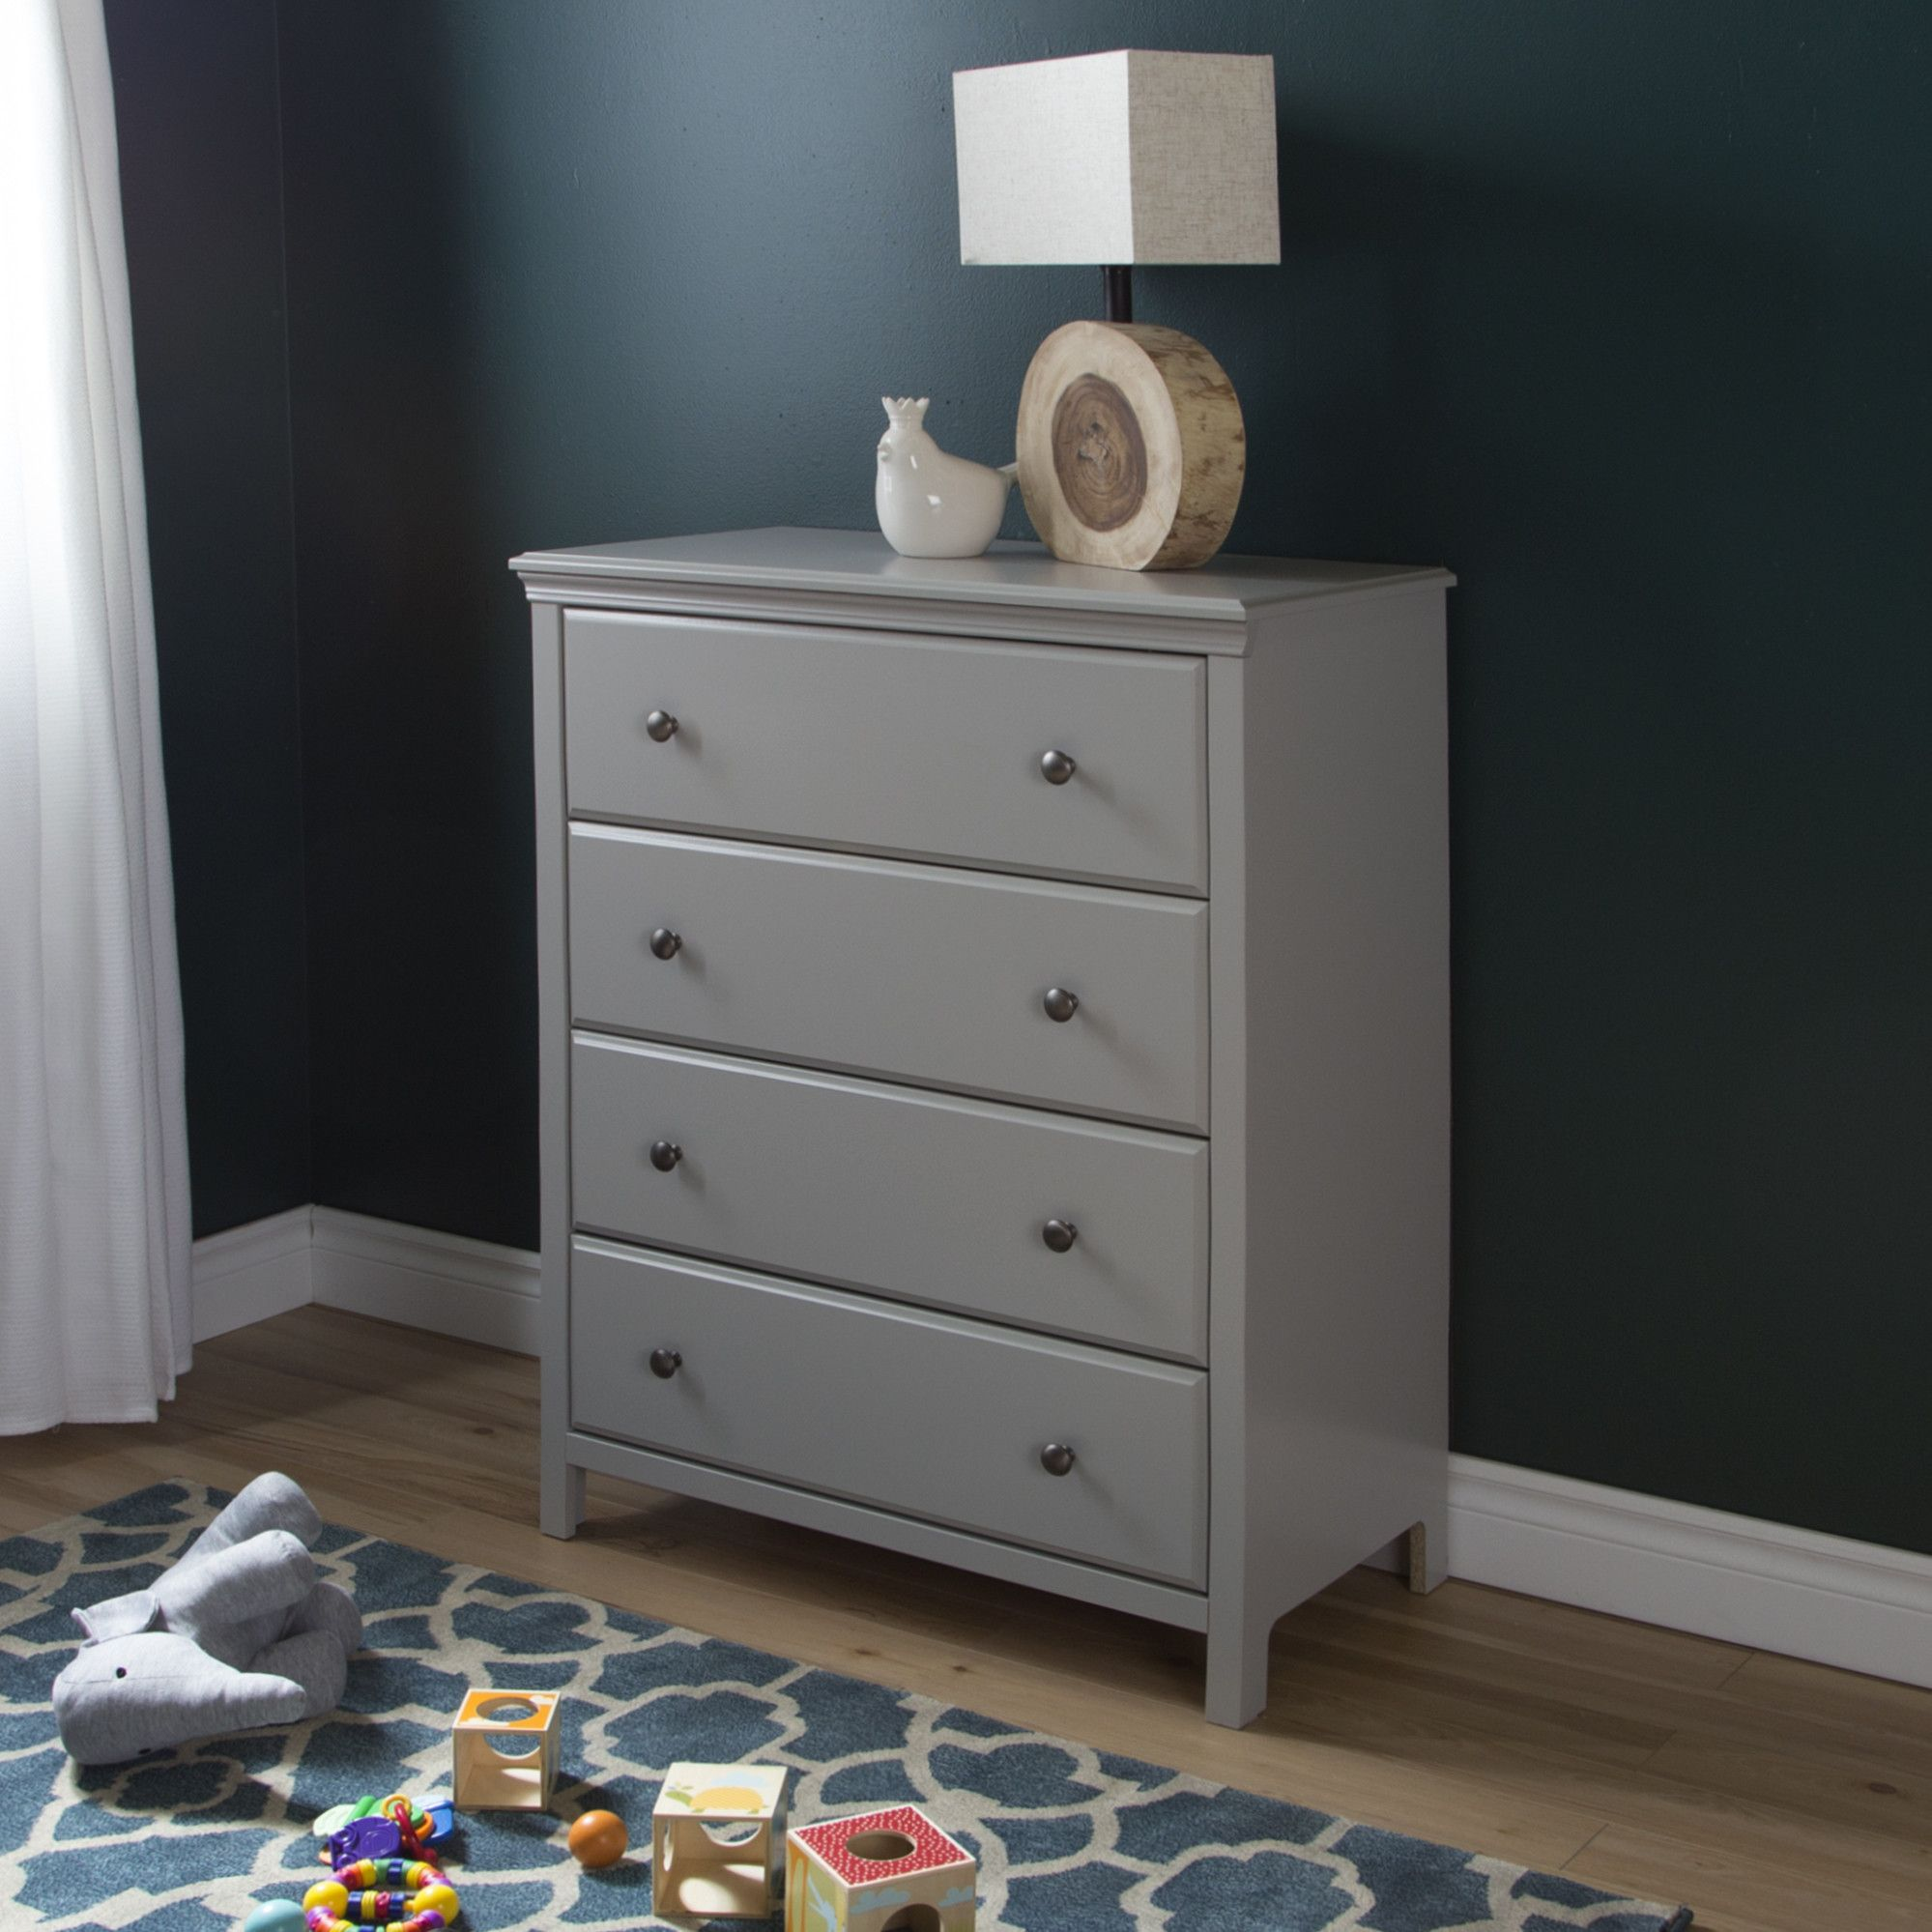 Wayfair Isabelle And Max Grey 6 Drawer Double Dresser Aptdeco Double Dresser Drawers Storage Spaces [ 1000 x 1000 Pixel ]